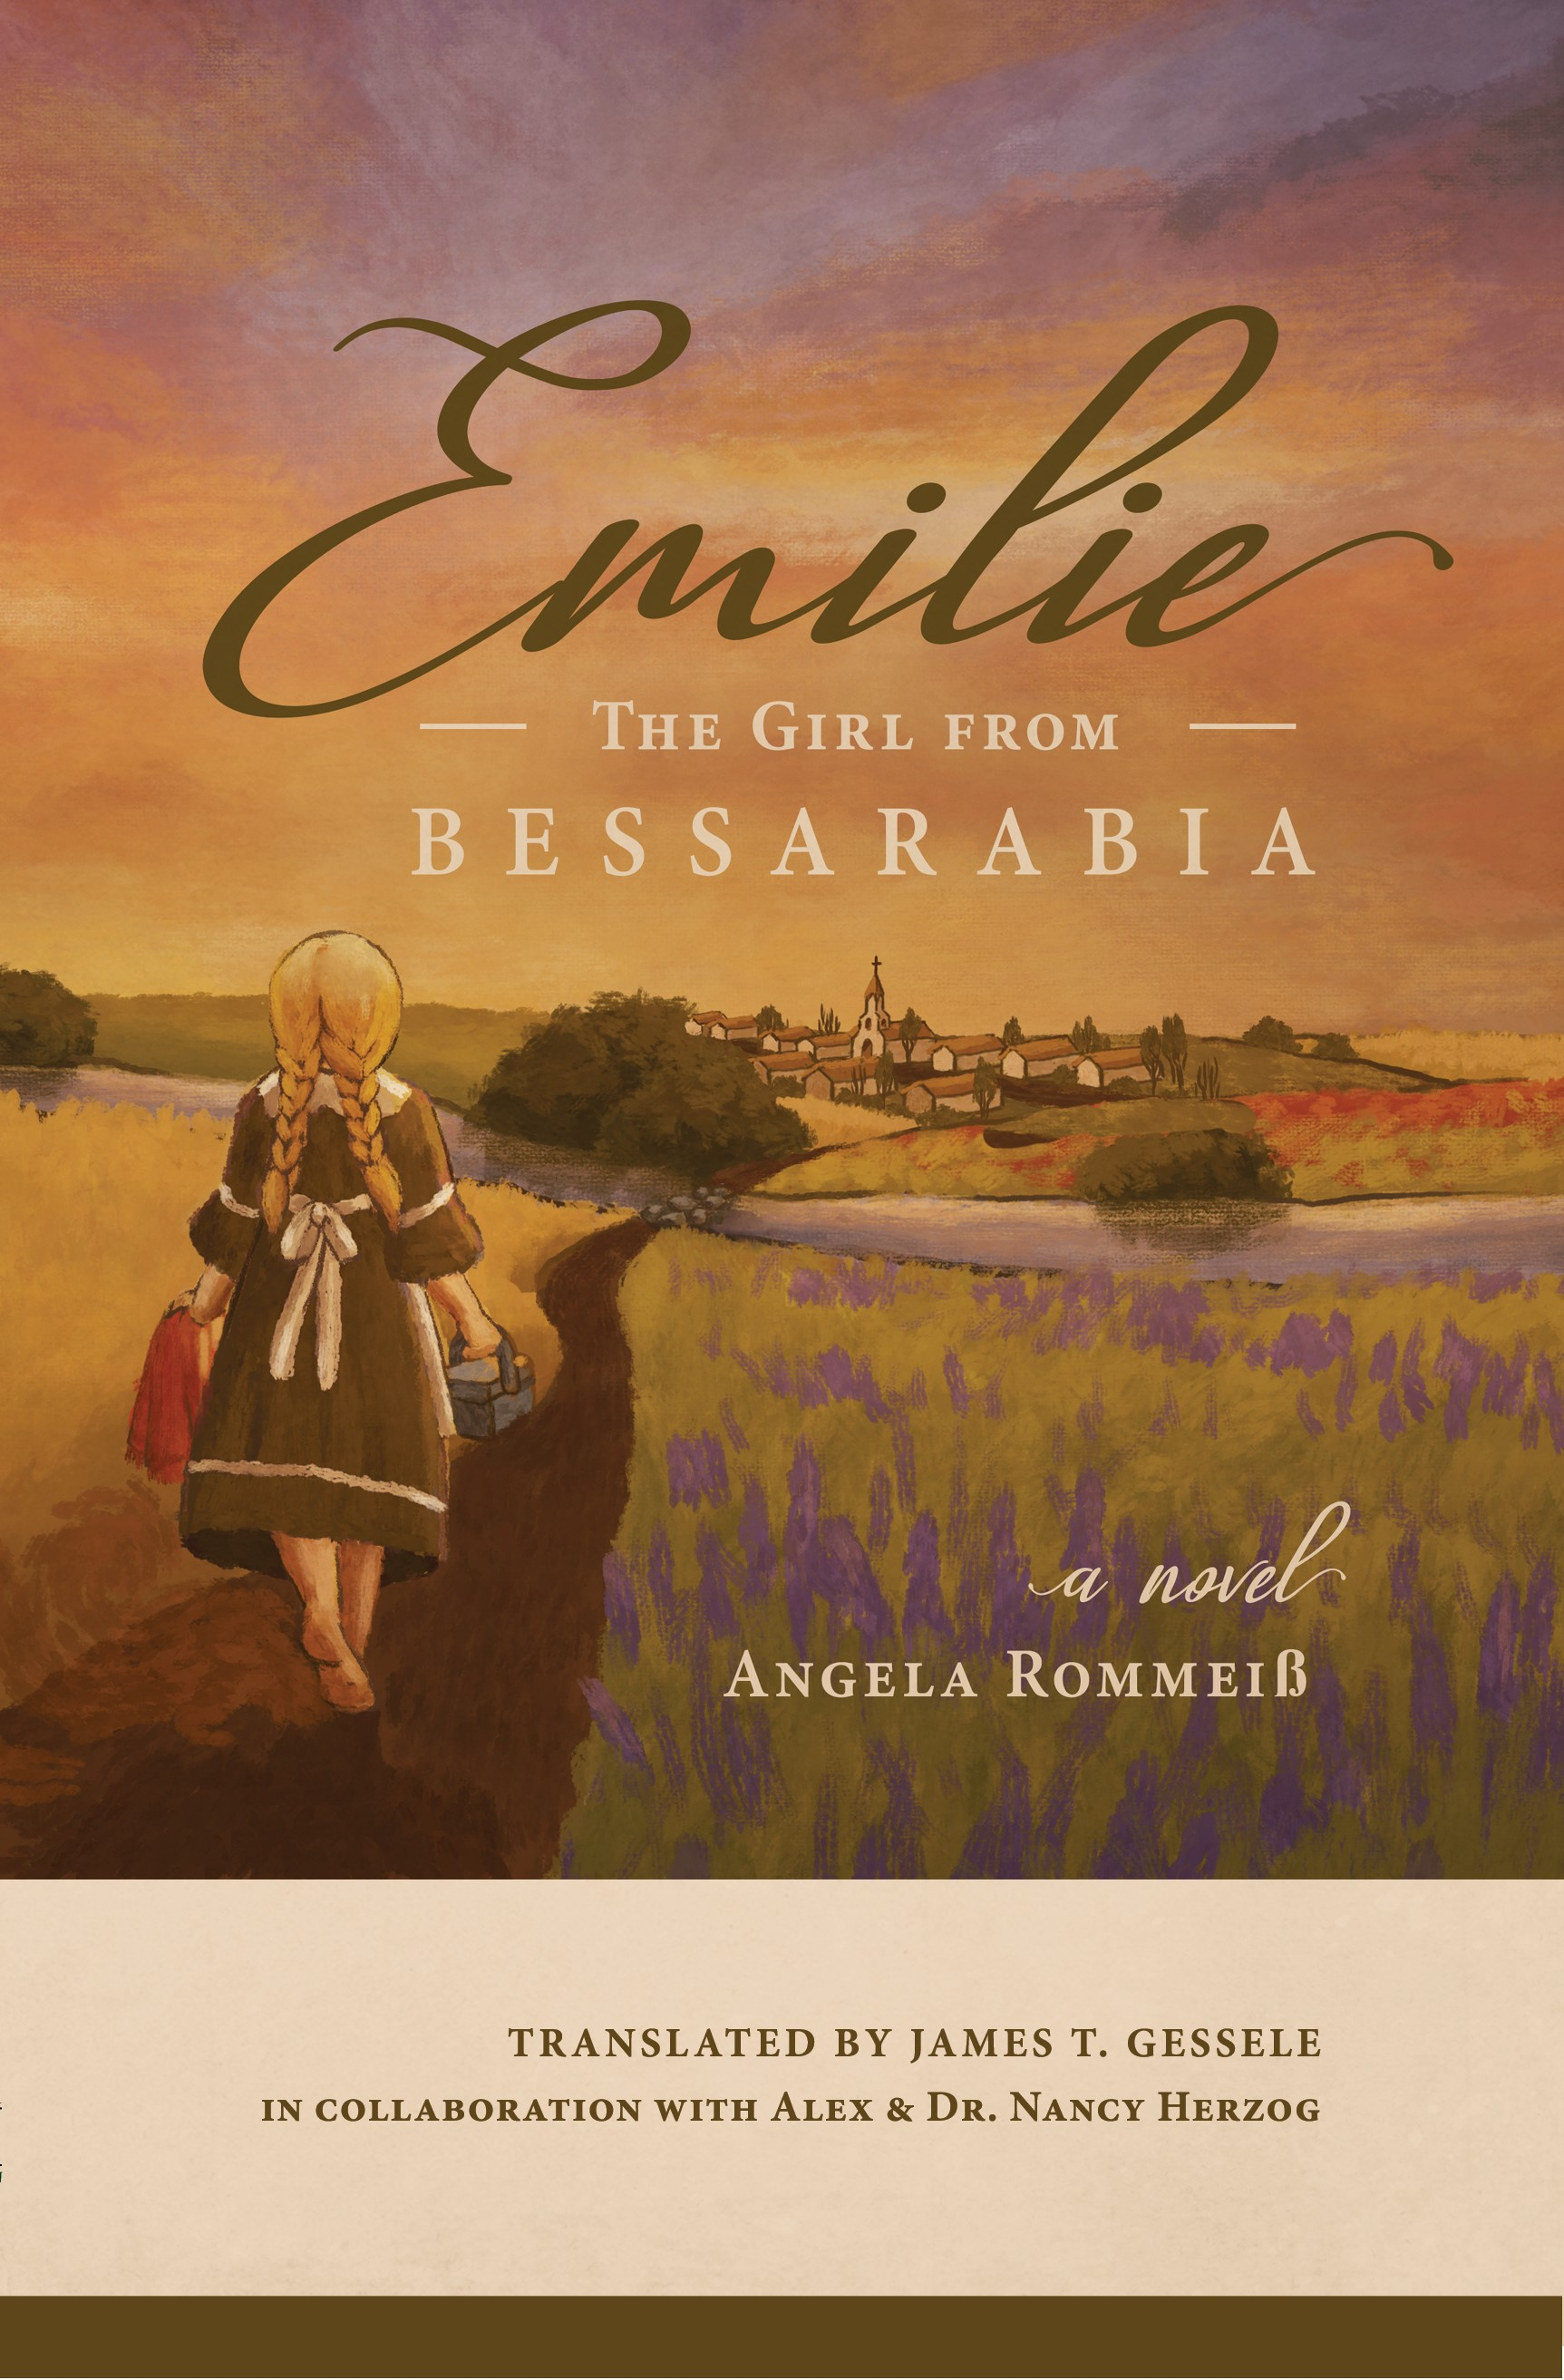 Emillie book cover